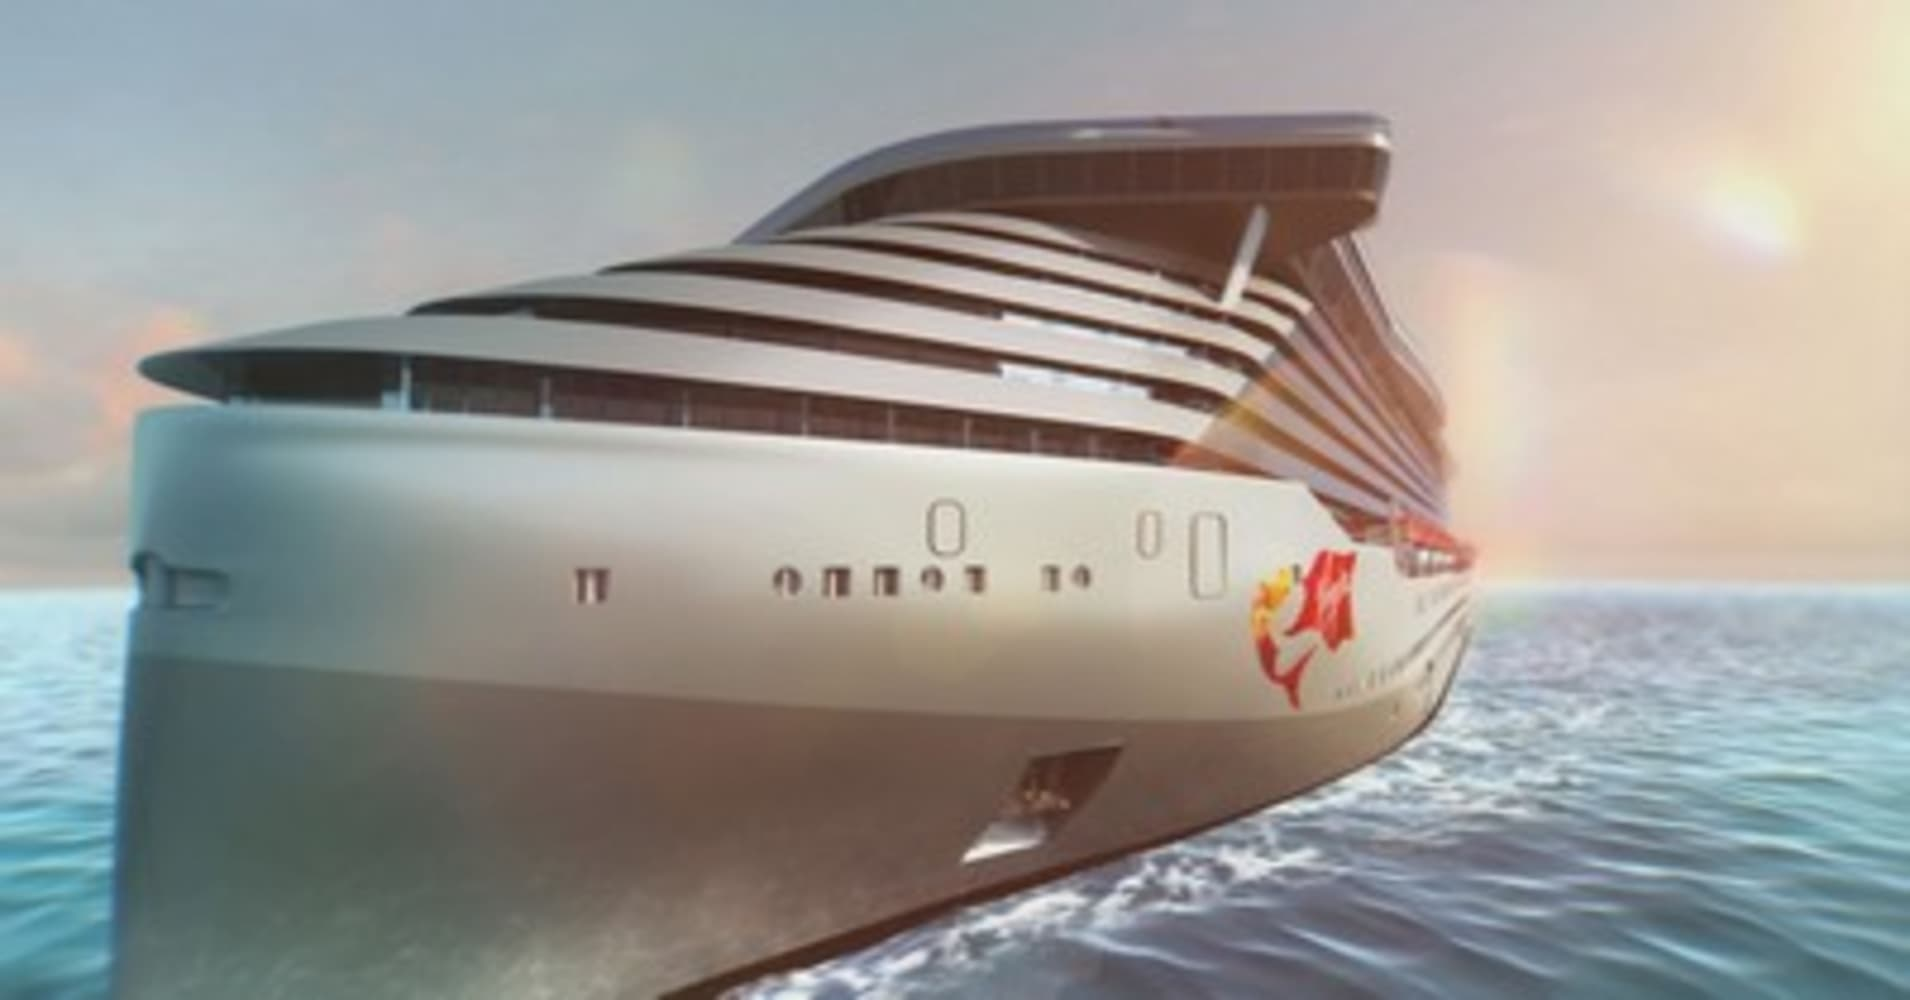 Richard Branson gets into cruise business